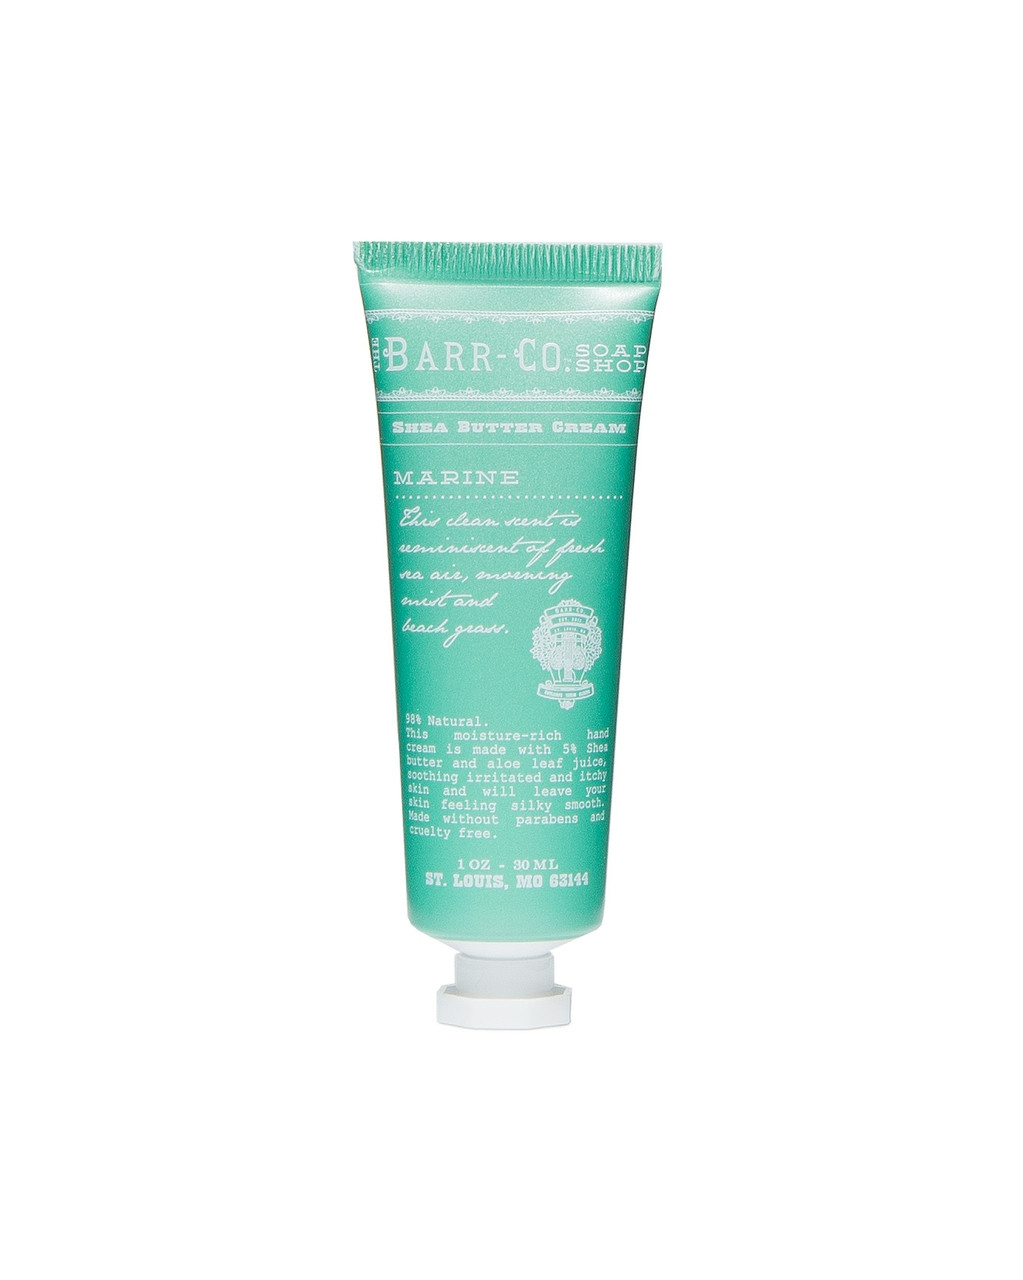 Barr-Co. Marine Mini Hand Cream